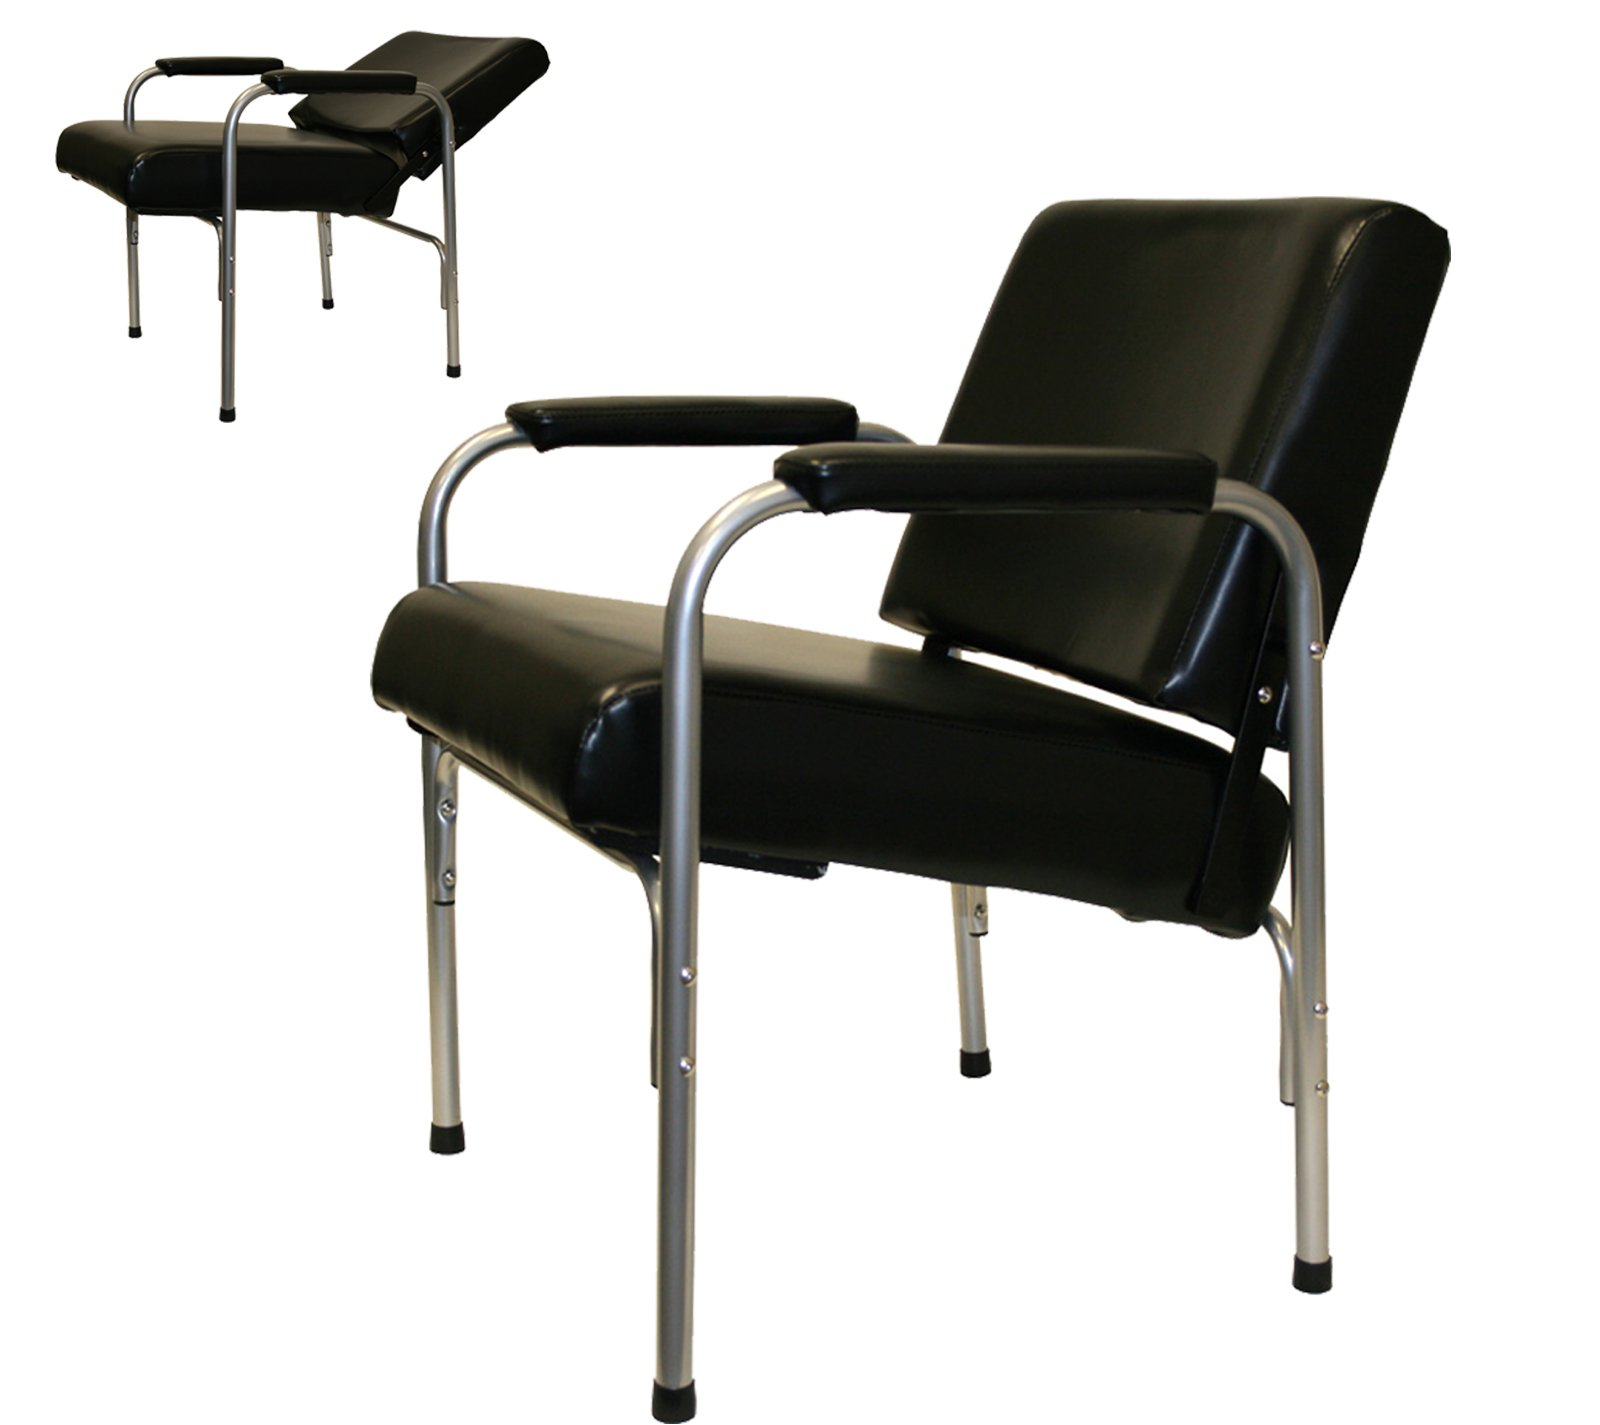 LCL Beauty Automatic Recline Shampoo Chair with Double-Reinforced Steel Frame by LCL Beauty